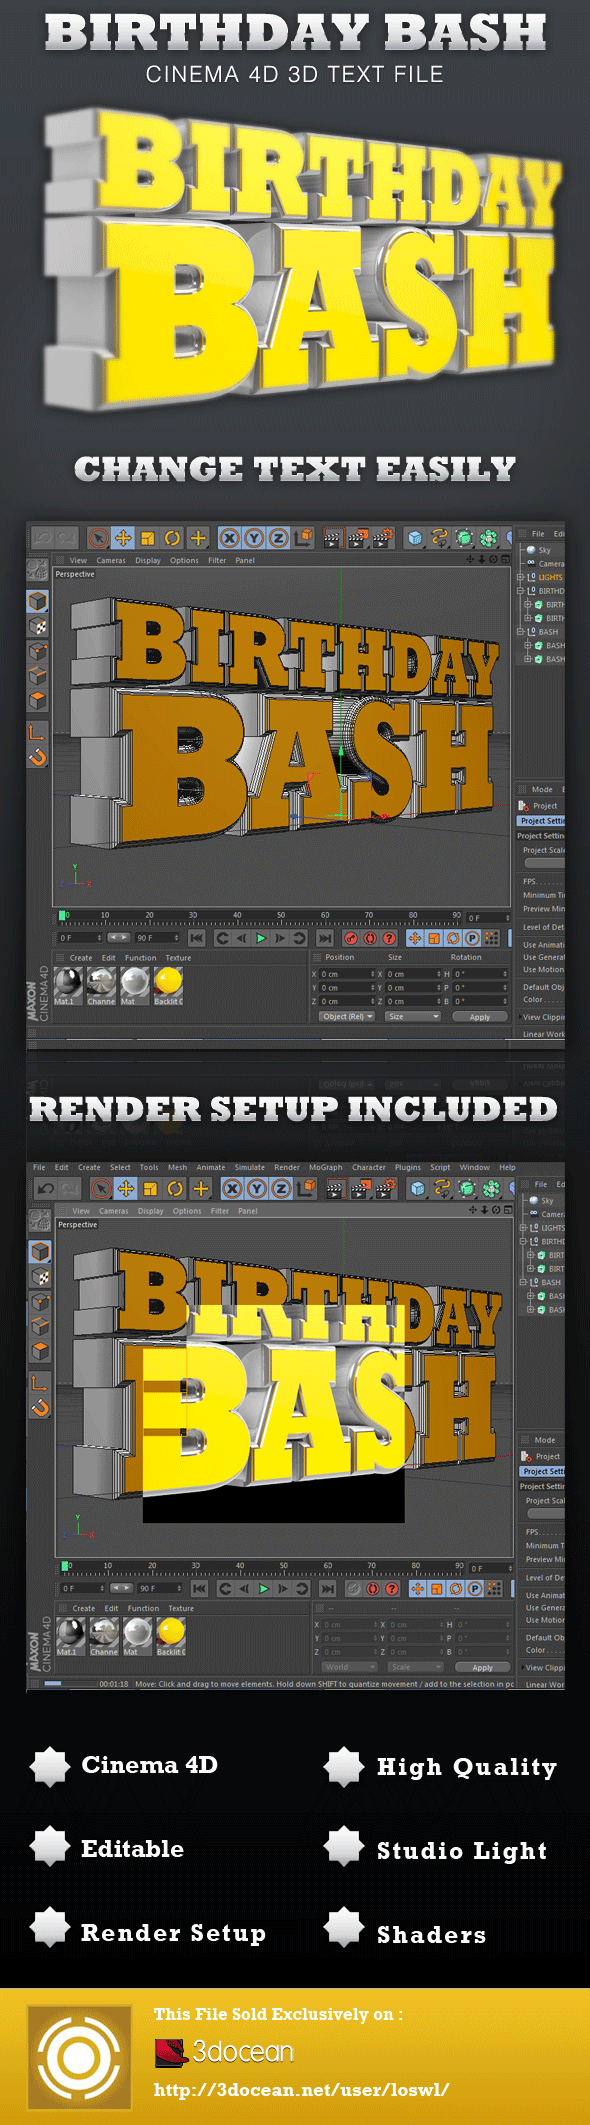 Birthday Bash Cinema 4D 3D Text File - 3DOcean Item for Sale